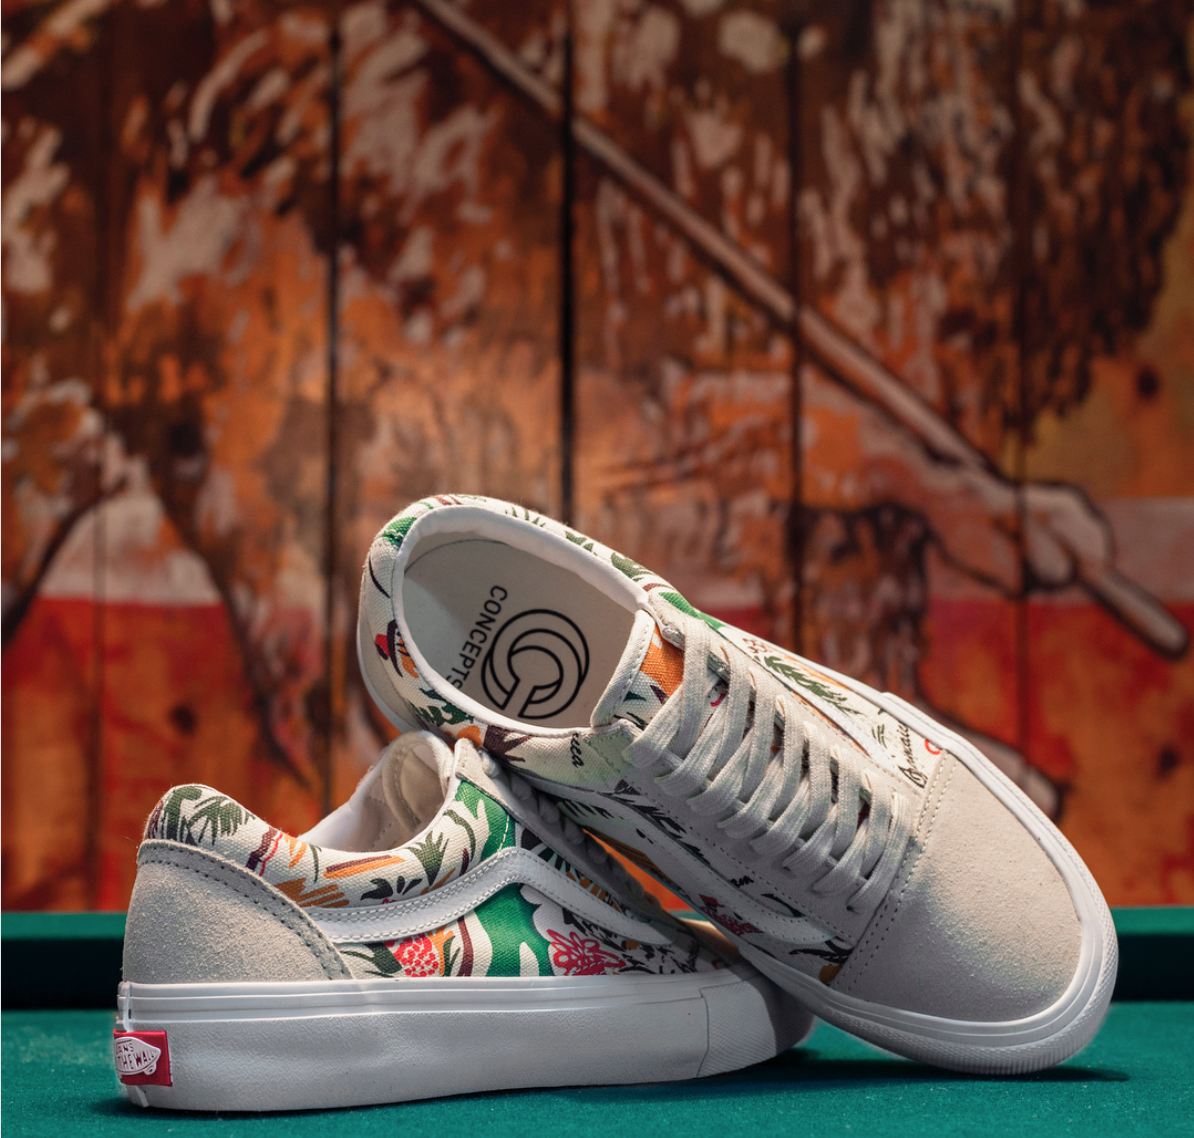 0066c0d45f Vans Skate x Concepts Old Skool Pro Jamaica Pack — strictly waffles.